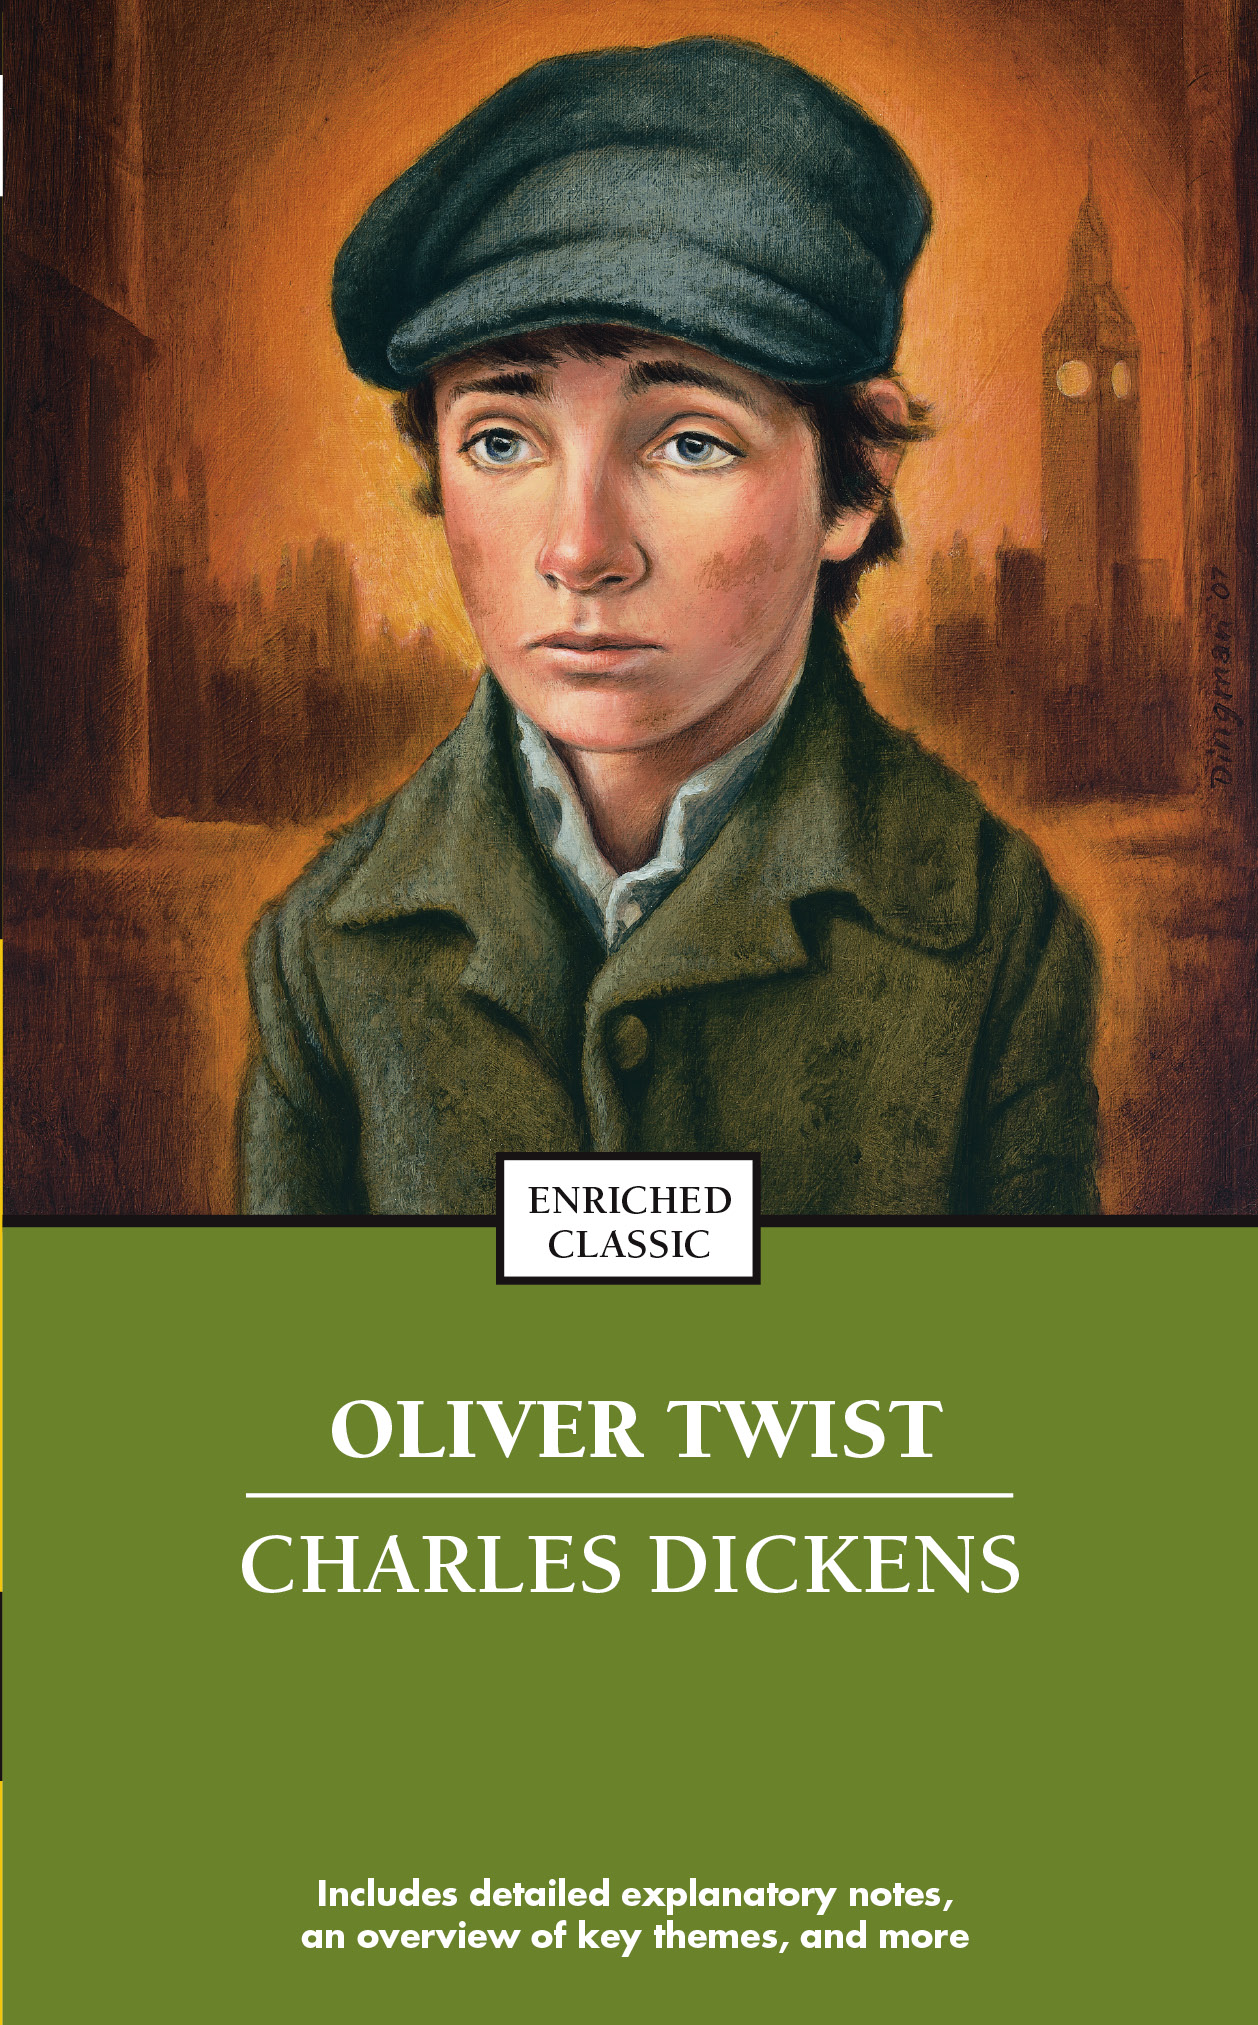 the use of symbolism in charles dickens novel a tale of two cities A tale of two cities (1859) is a novel by charles dickens, set in london and paris before and during the french university missouri essay history racism of revolution the story of a railroad boy (english) by munroe, kirk n.